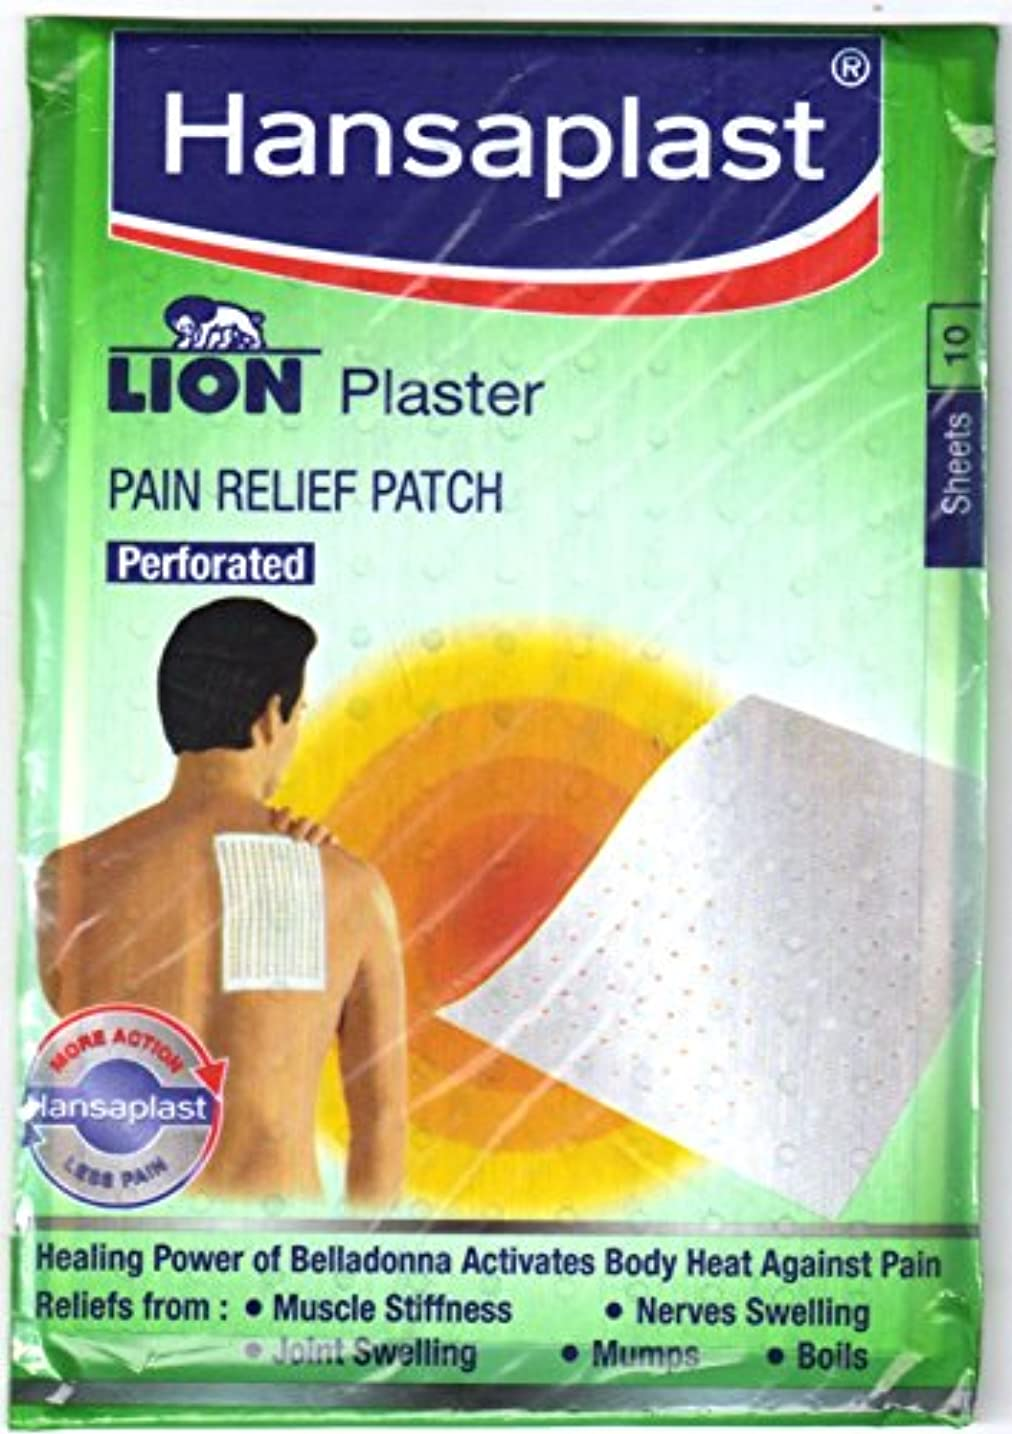 所有者余韻専門知識Hansaplast Lion plaster (Belladonna) 5 pack of 50 Sheets Pain Relief Patch